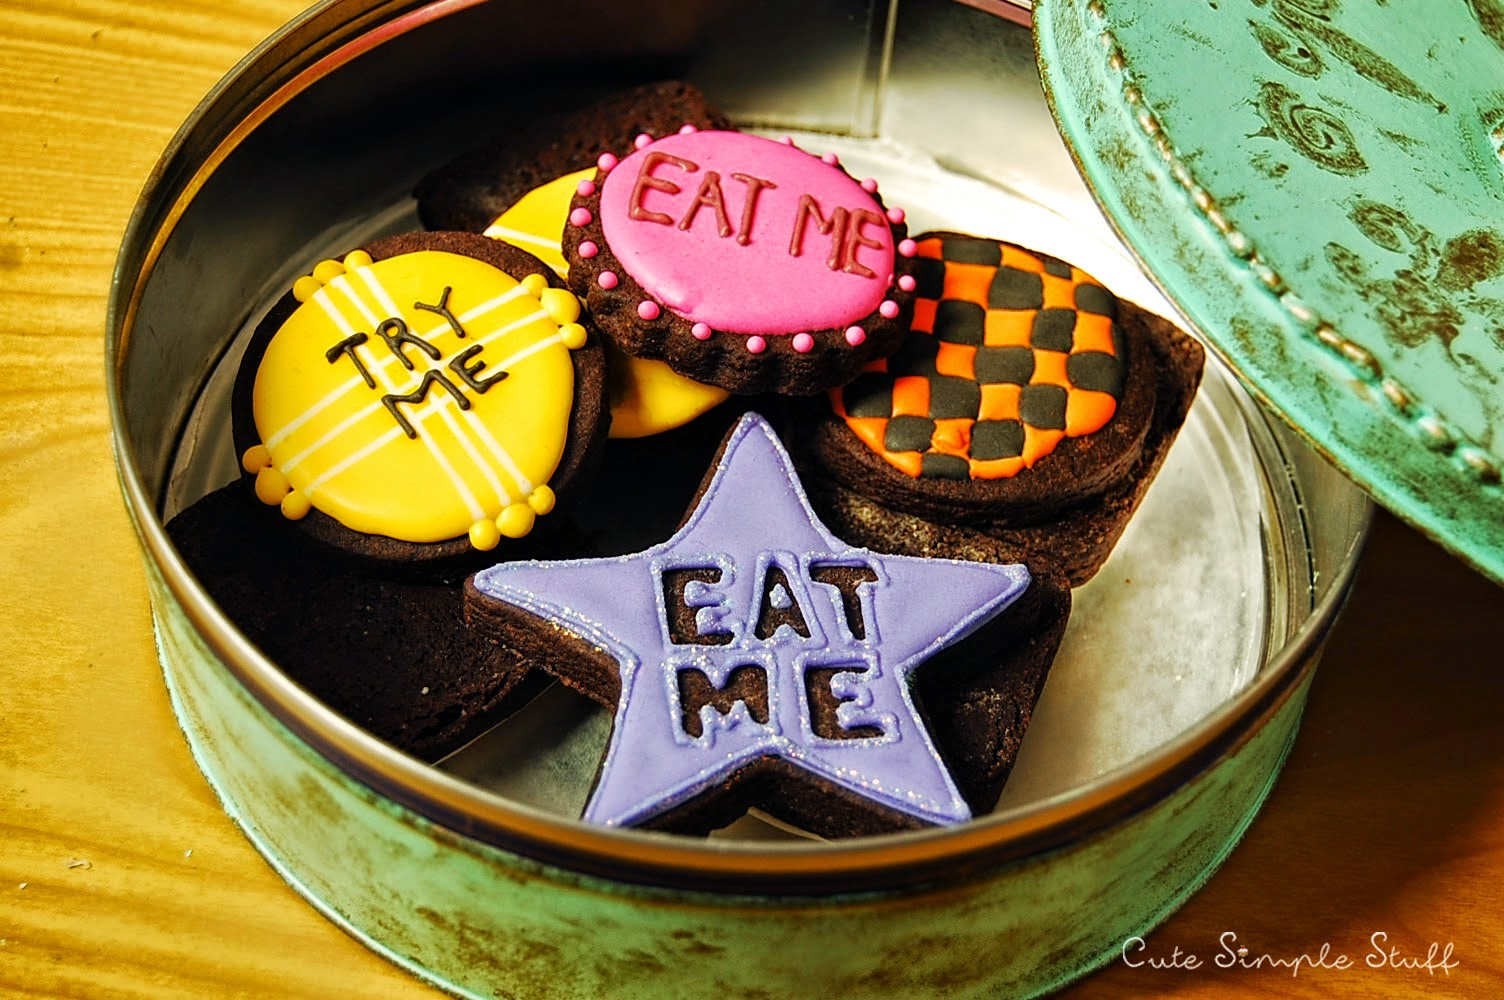 http://www.cutesimplestuff.com/2015/01/alice-in-wonderland-cookies.html